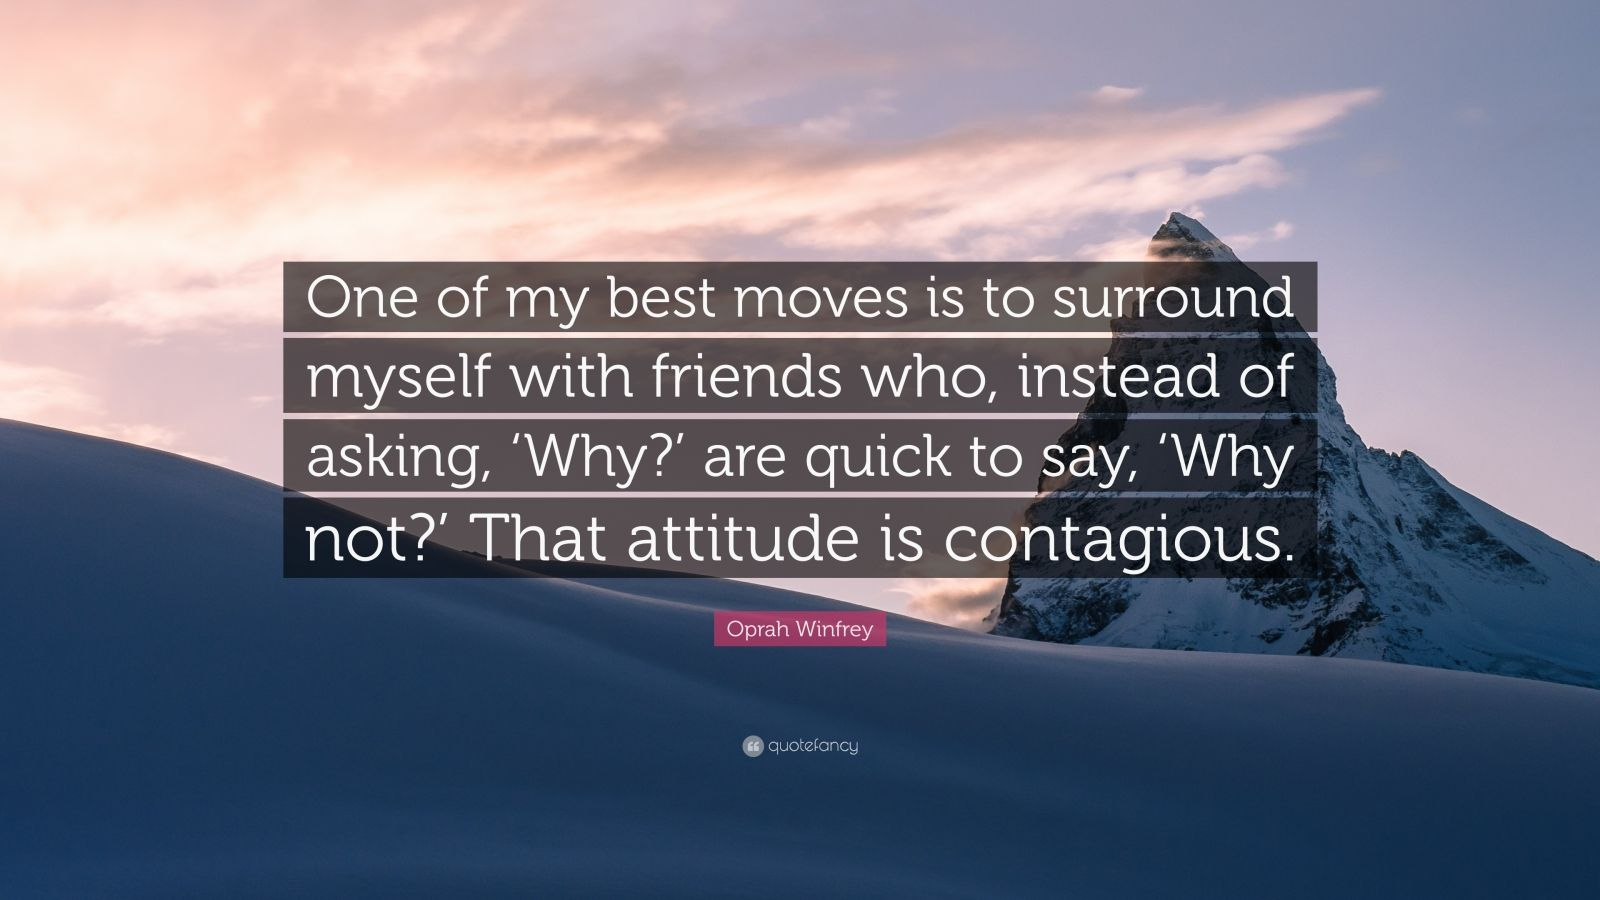 """Oprah Winfrey Quote: """"One of my best moves is to surround myself with friends who, instead of asking, 'Why?' are quick to say, 'Why not?' That attitude is contagious."""""""